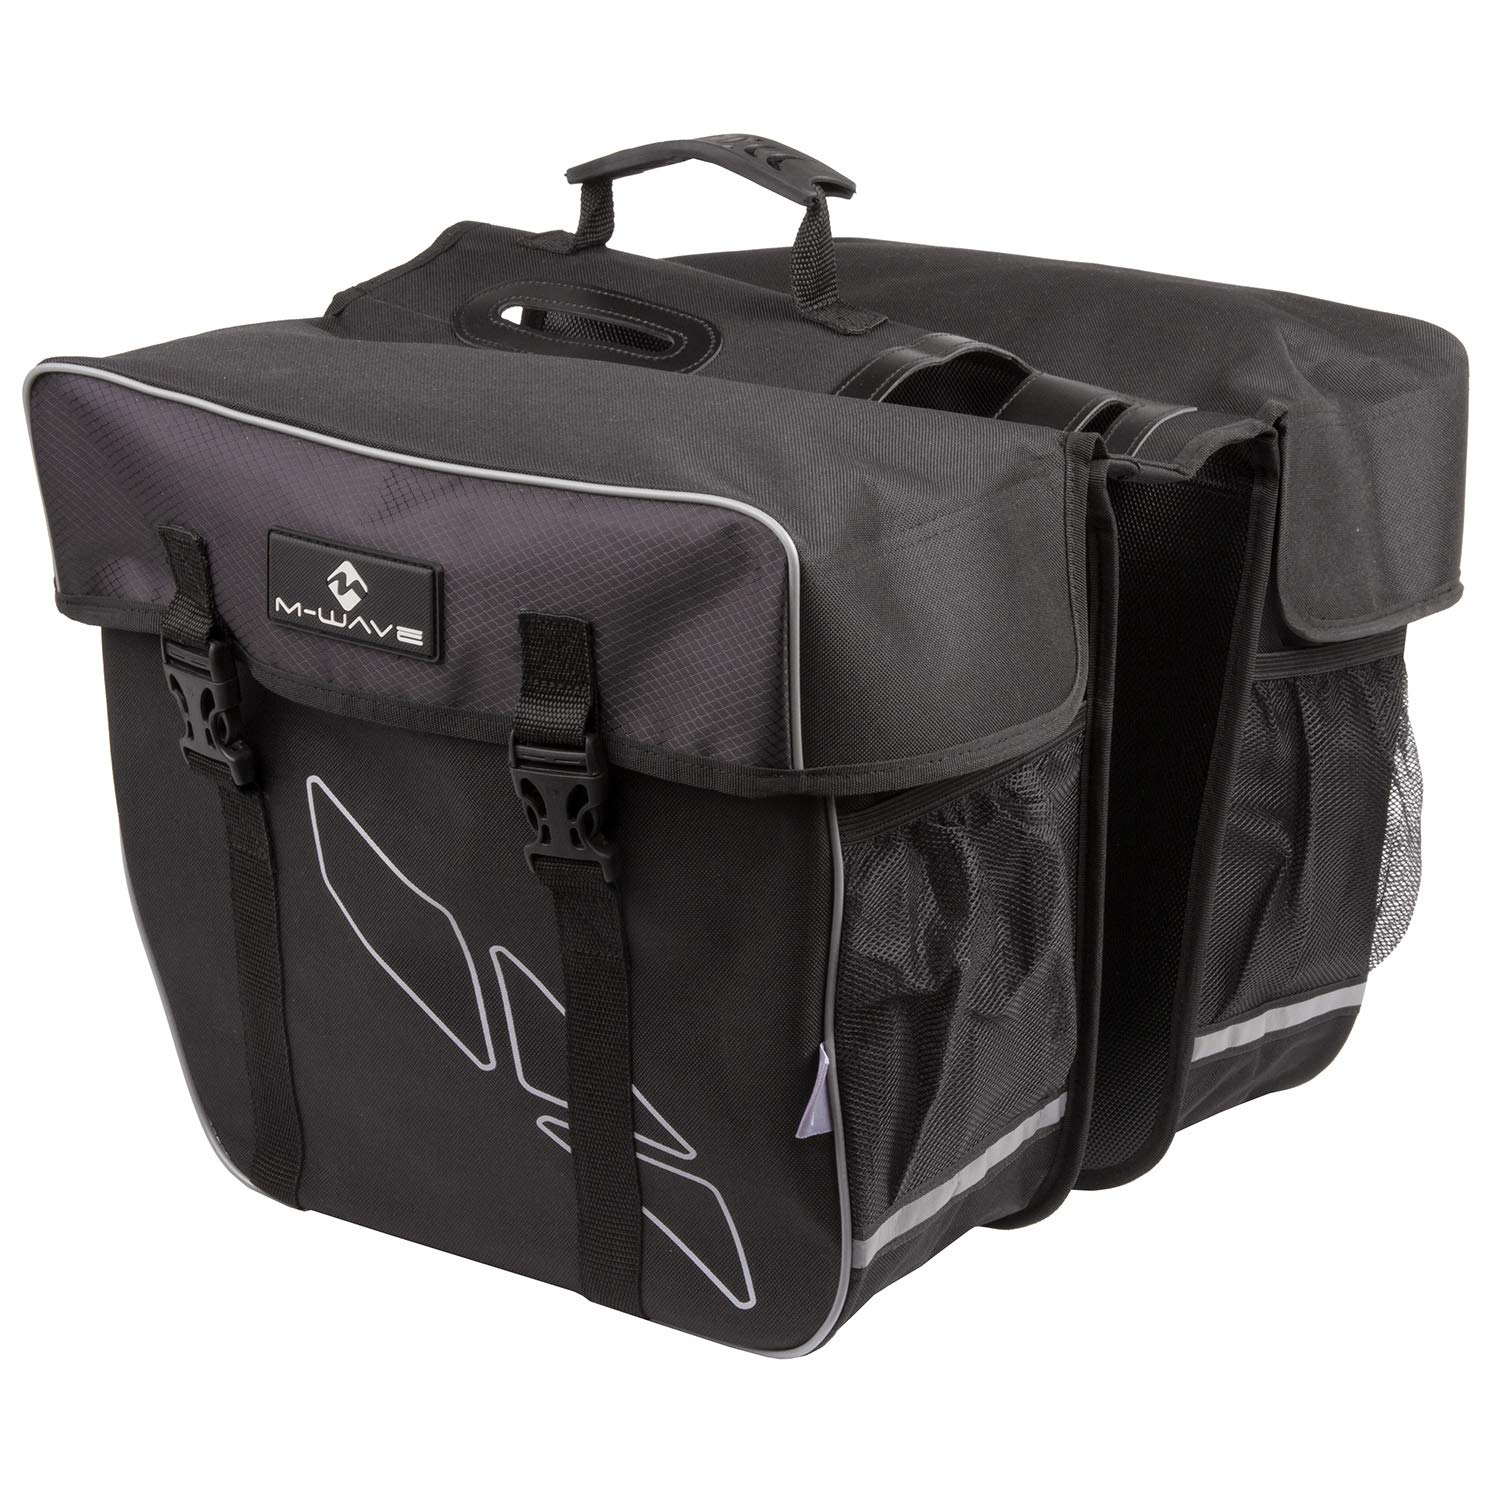 M-Wave Day Tripper Double Pannier Alforjas traseras Dobles ...